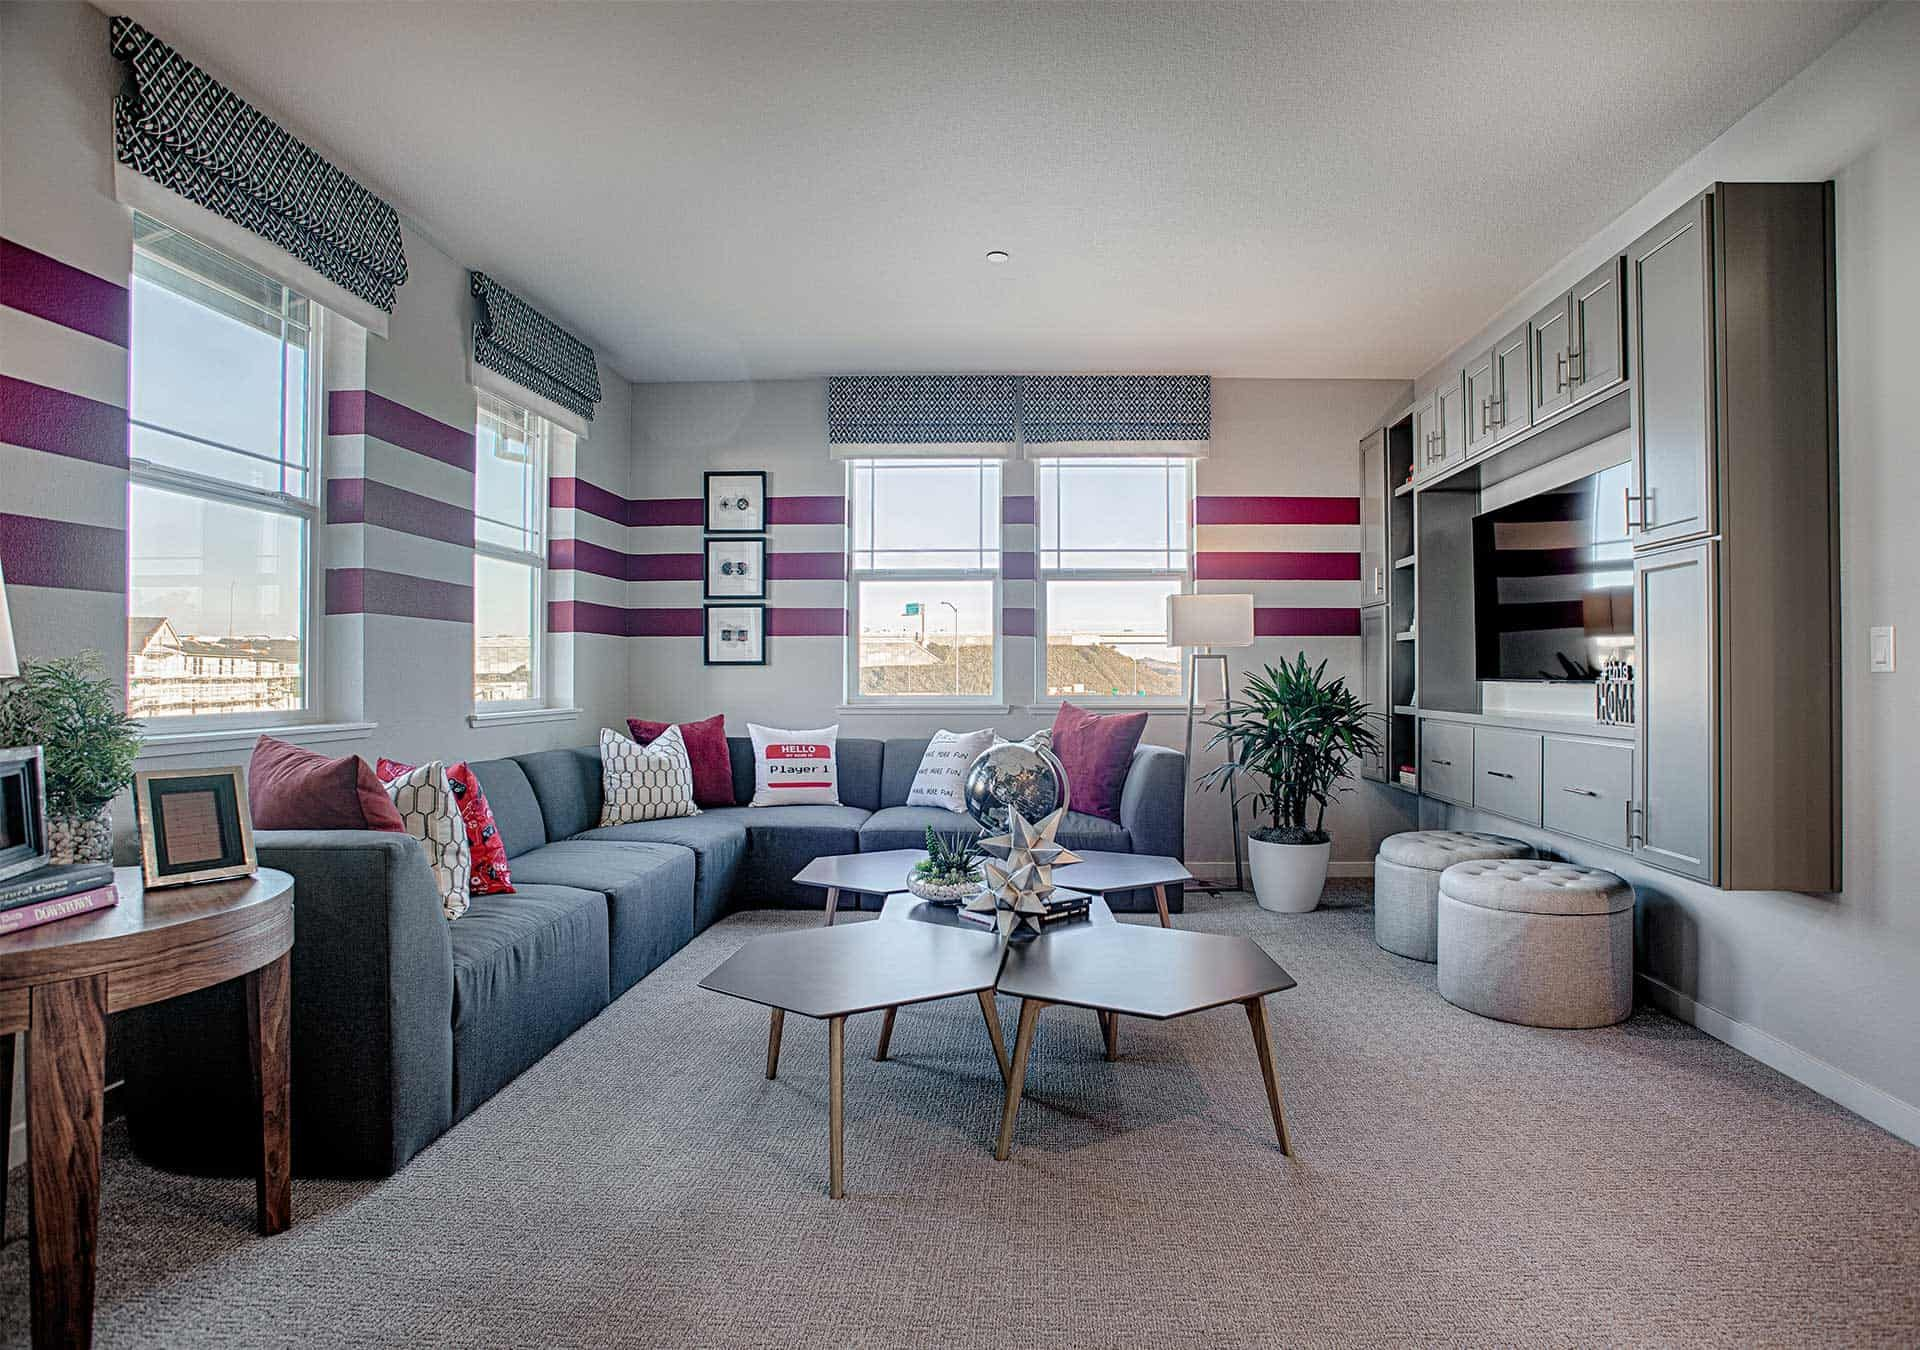 Living Area featured in the Plan 4 By Tri Pointe Homes in Santa Rosa, CA